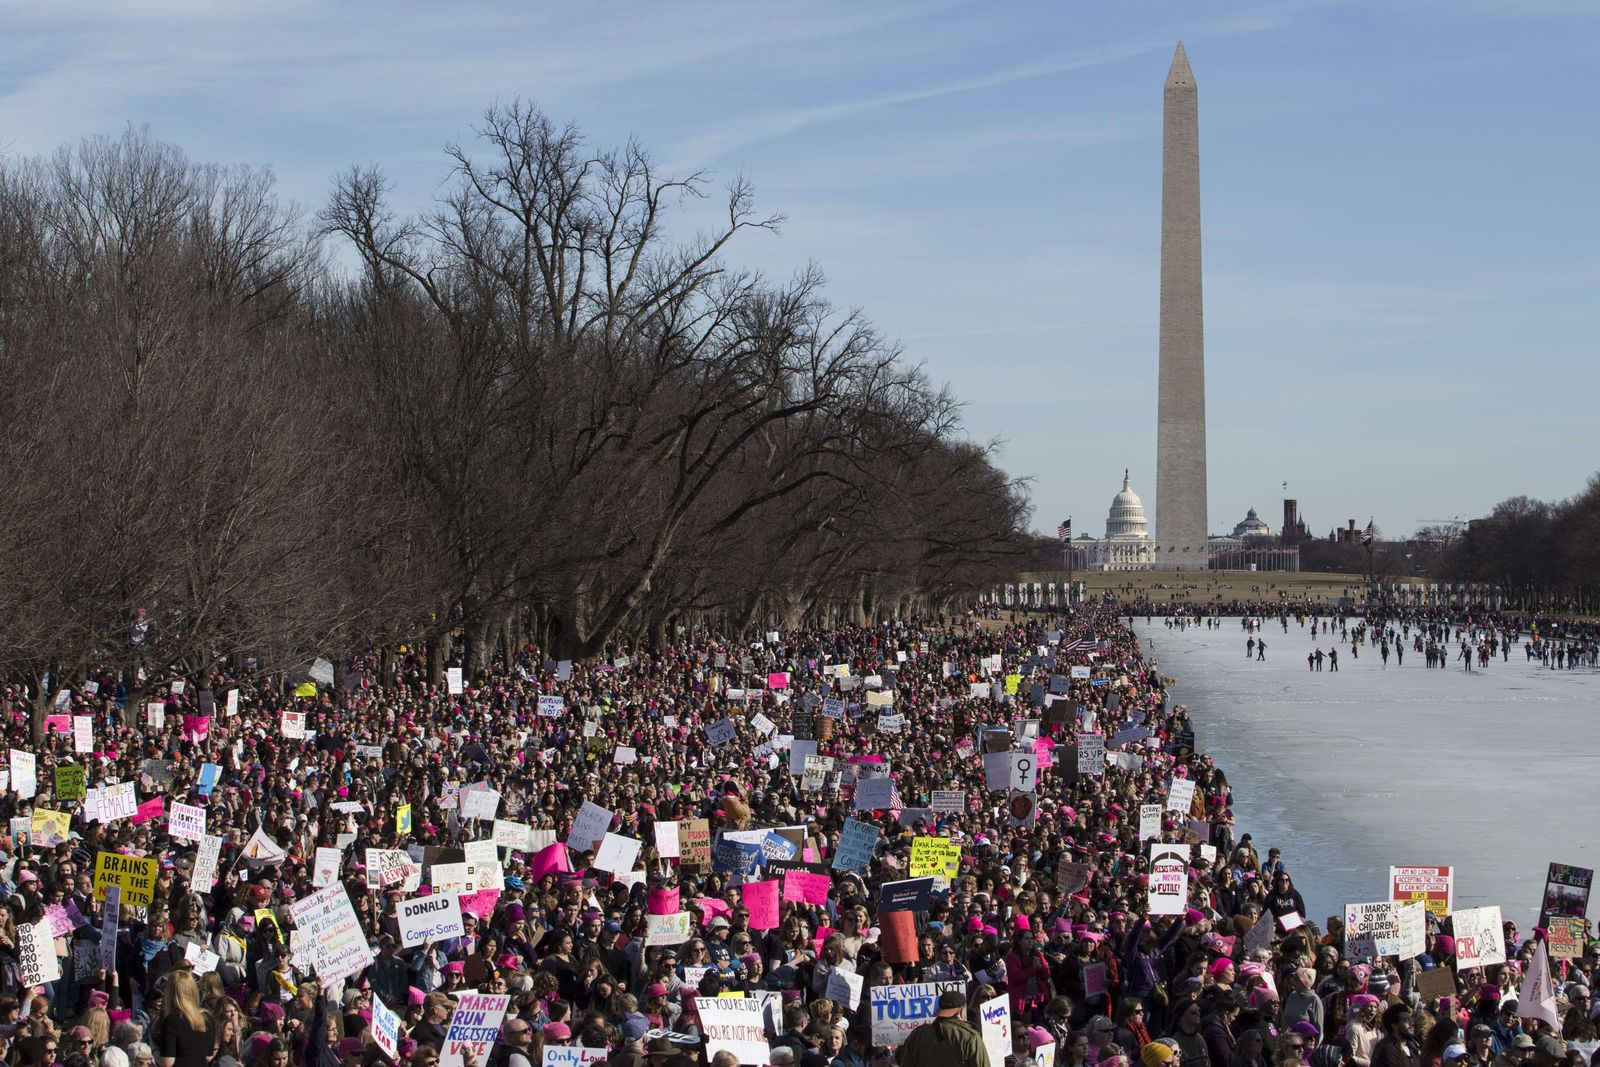 US-HUGE-CROWDS-RALLY-AT-WOMENS-MARCHES-ACROSS-THE-U.S.